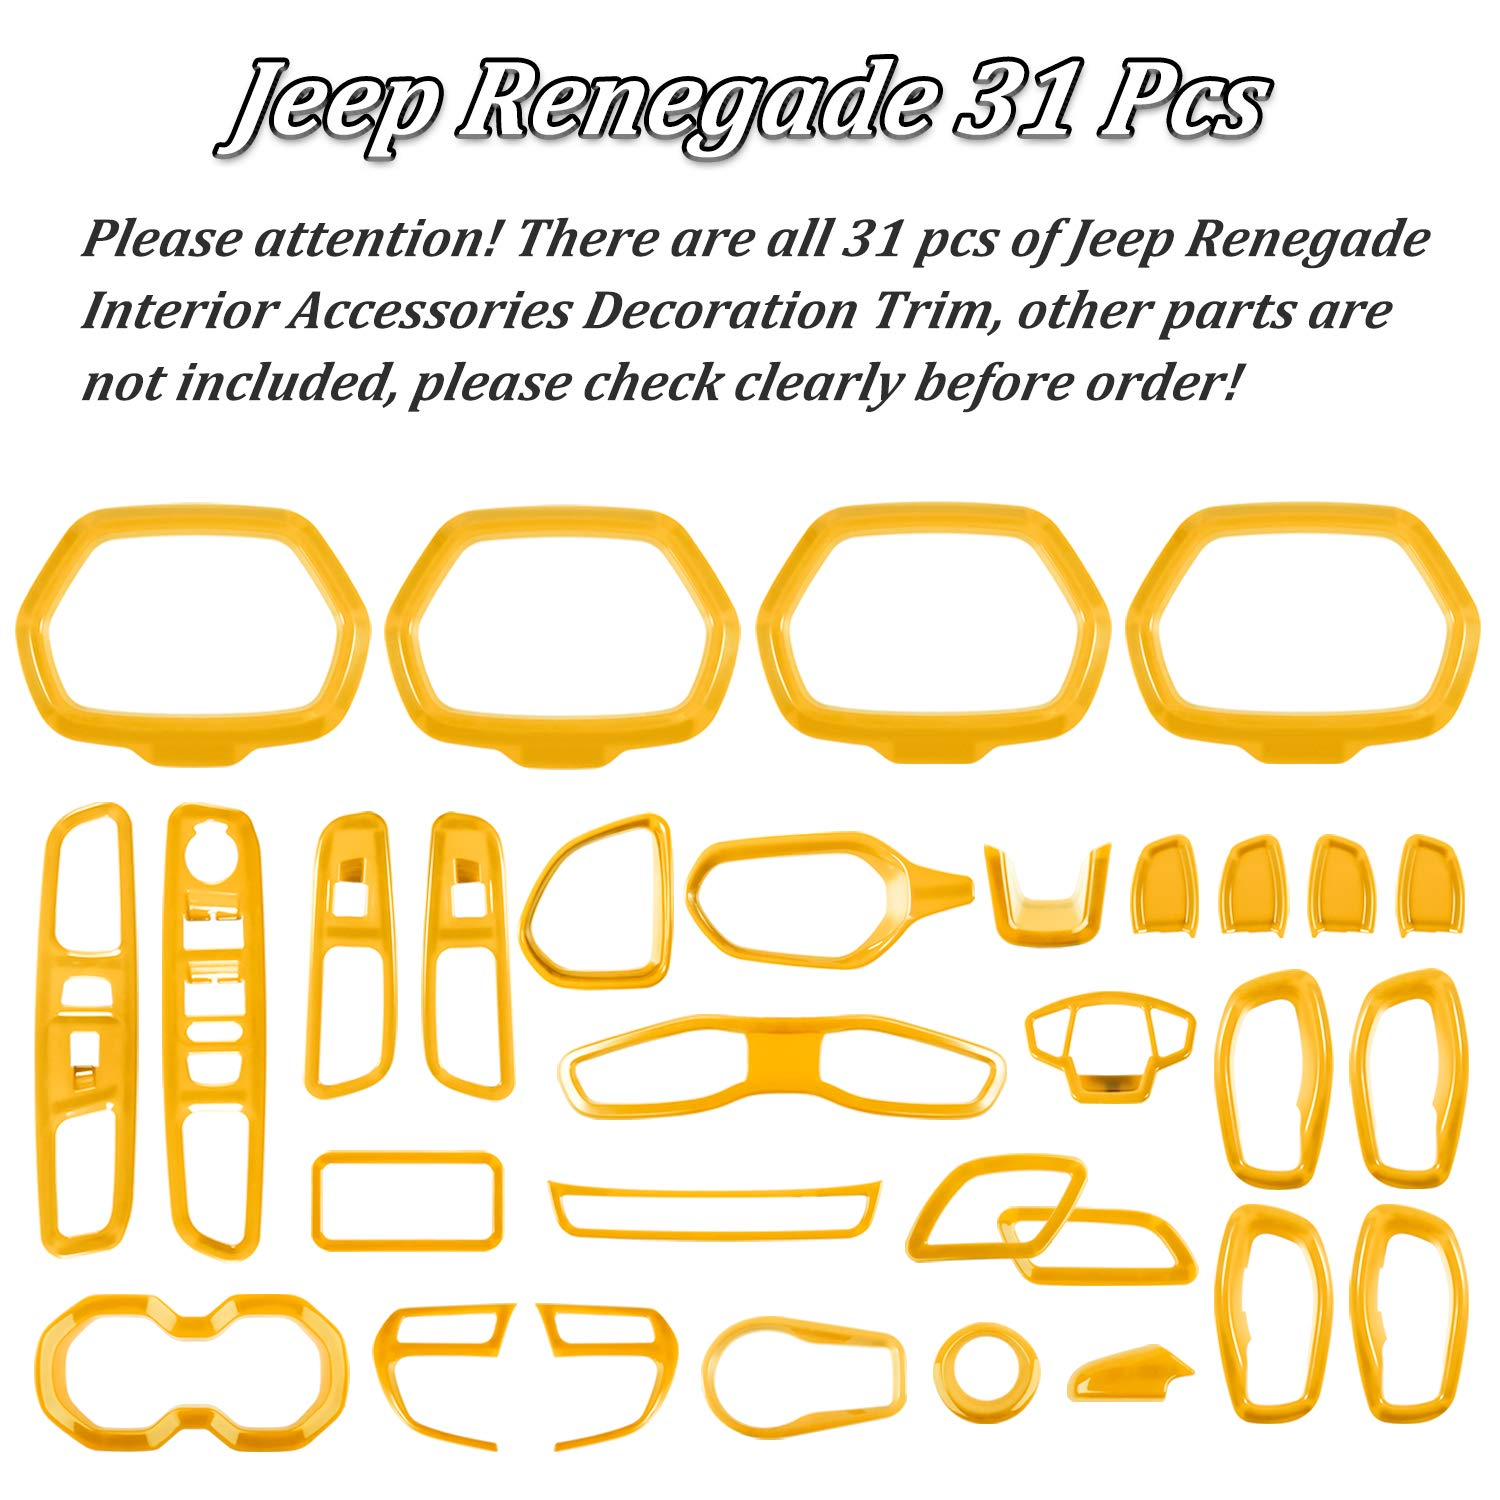 Danti Car Interior Accessories Decoration Trim Air Conditioning Vent Decoration /& Door Speaker /& Water Cup Holder /& Headlight Switch /& Window Lift Button Covers for Jeep Renegade 2015-2020 Orange